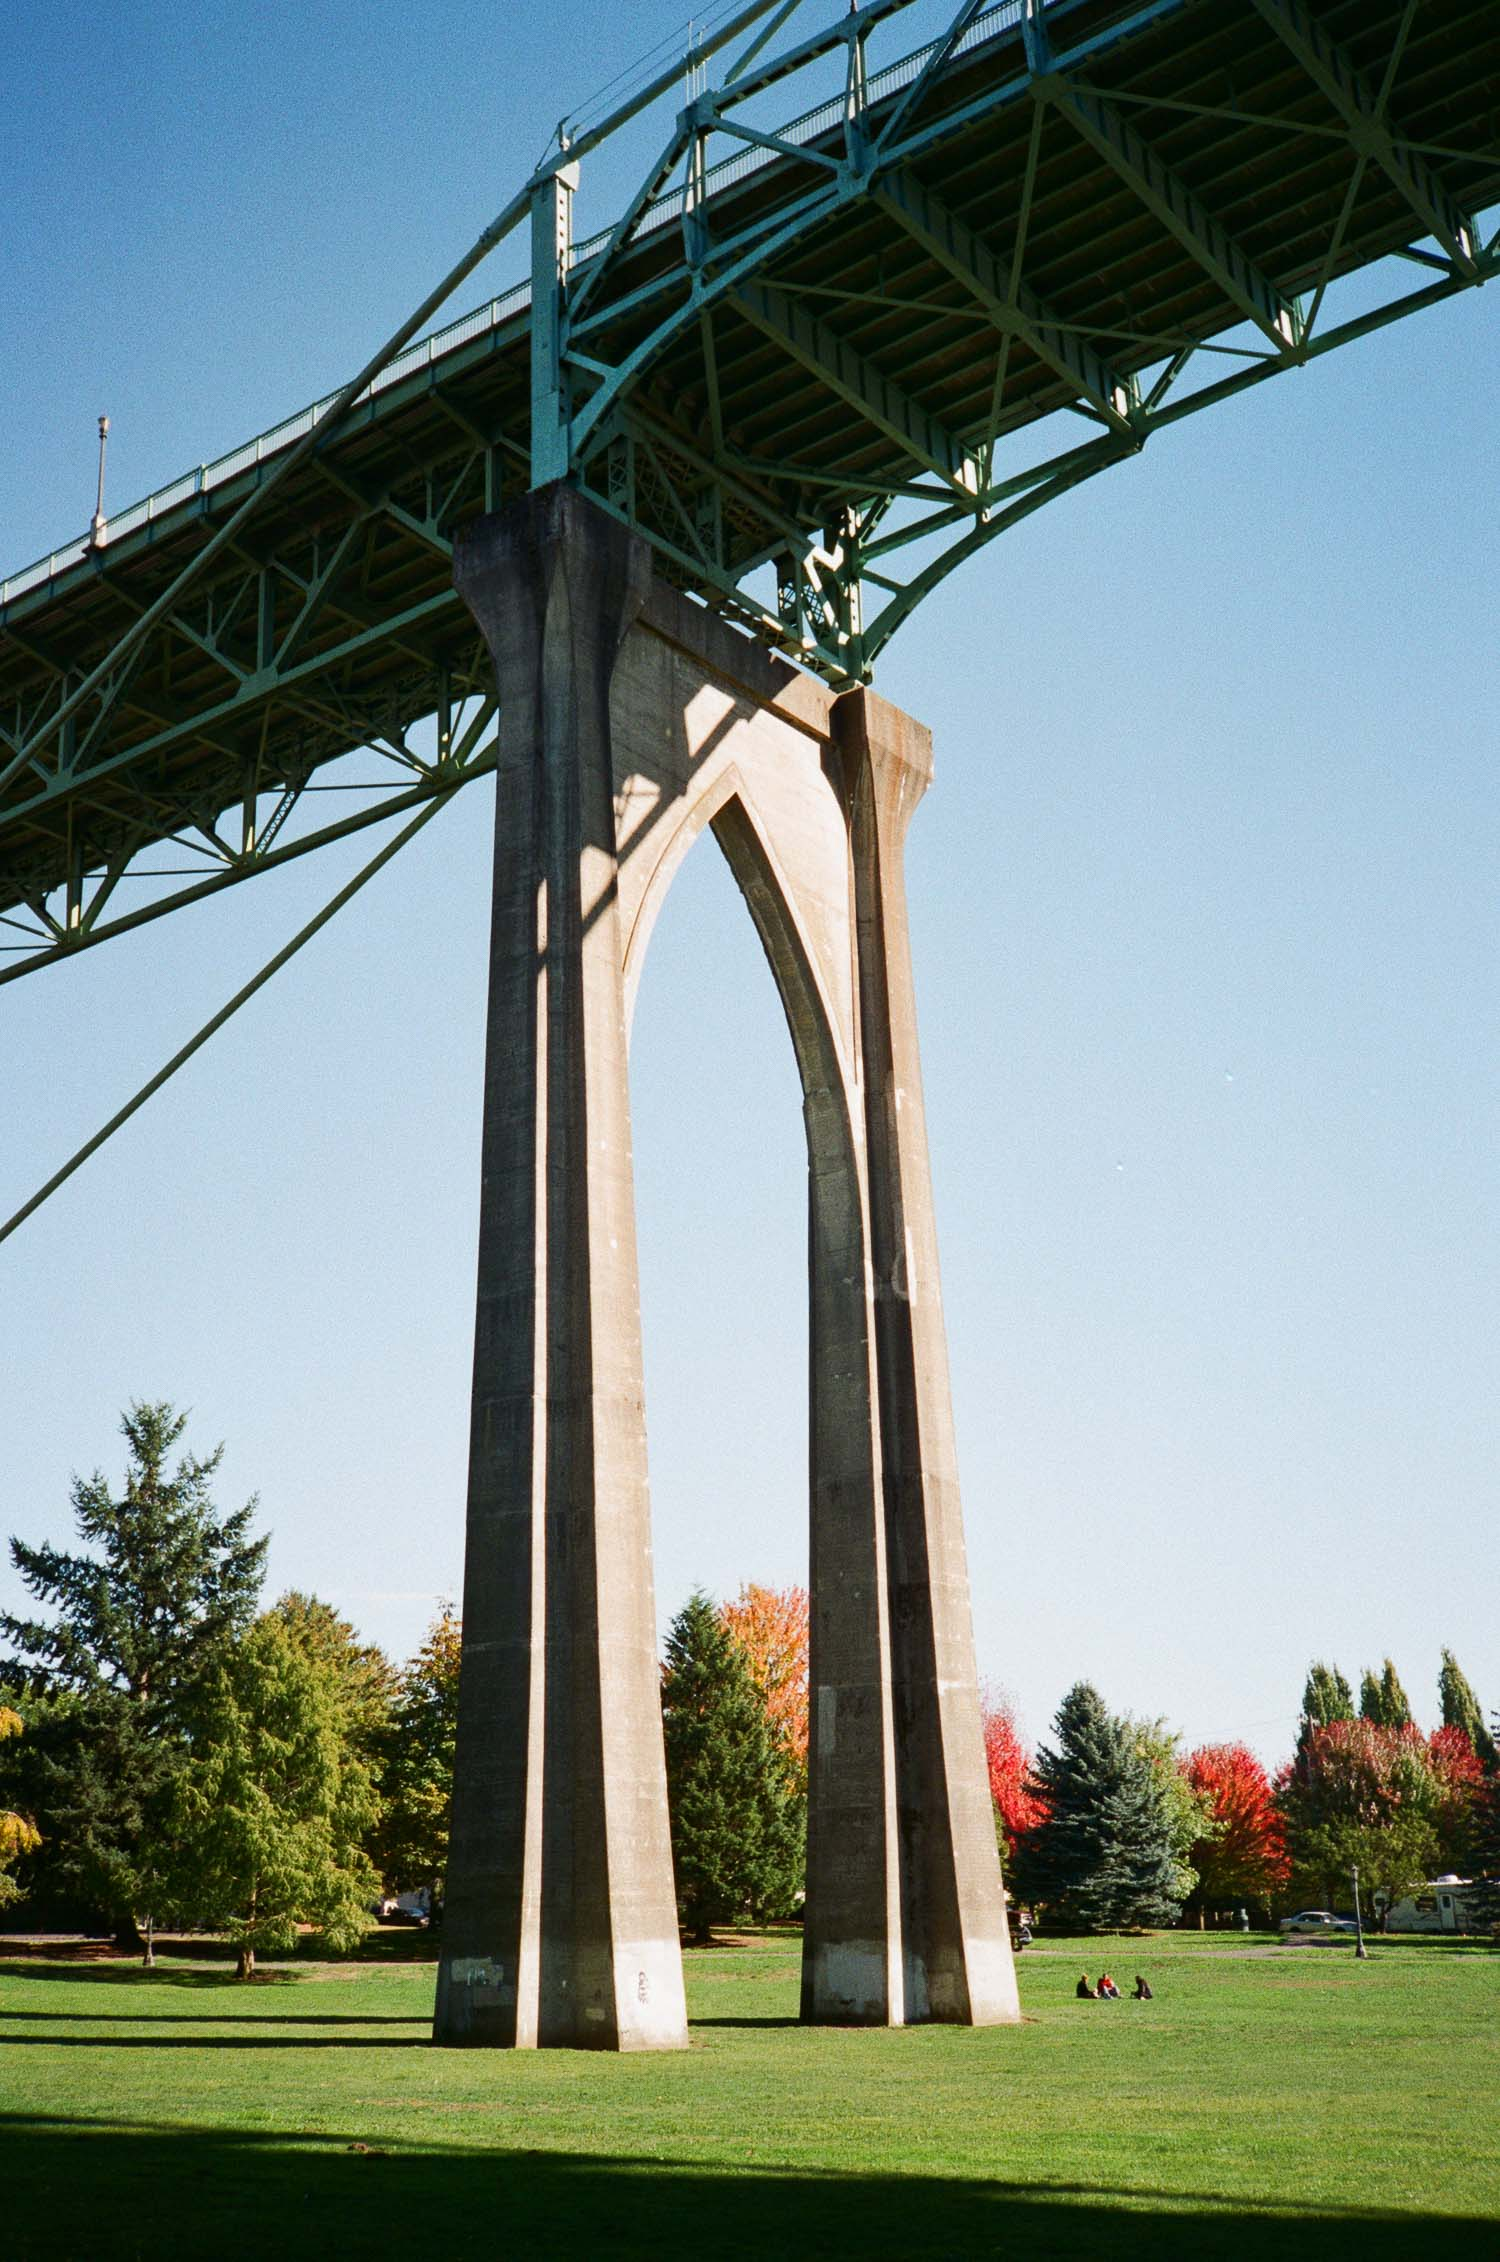 Photo of St. Johns Bridge in Portland, OR.